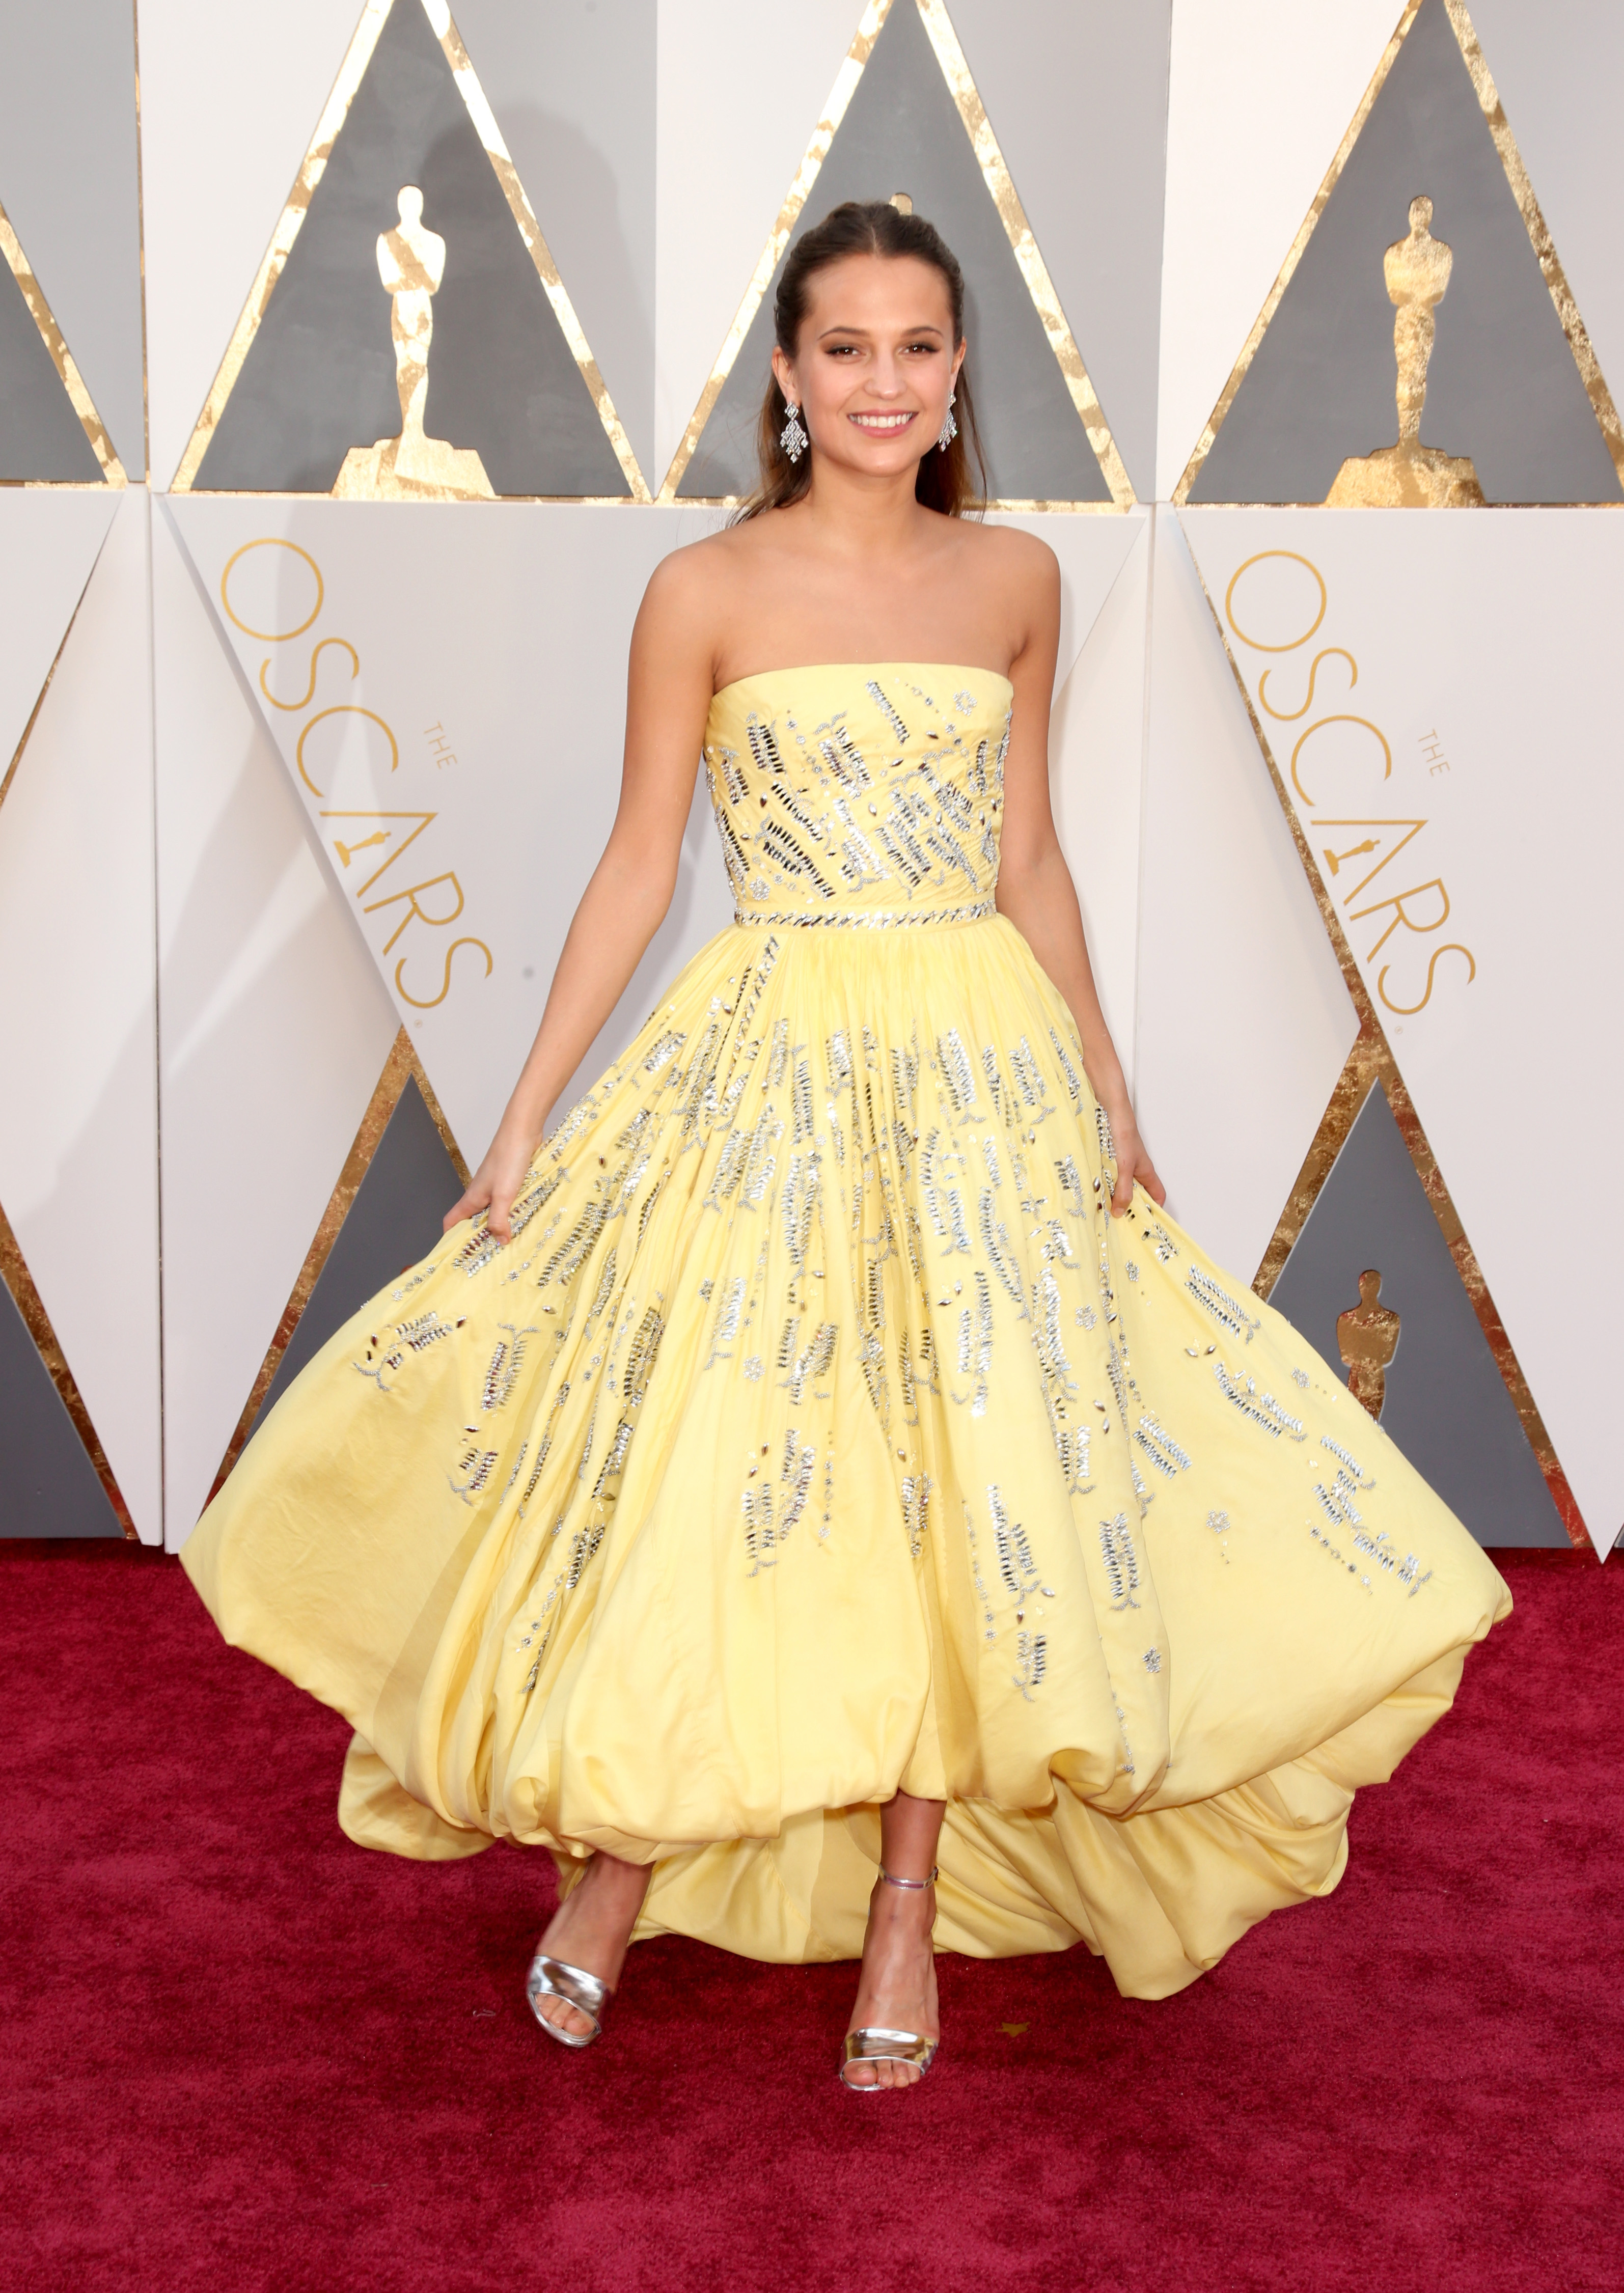 Alicia Vikander attends the 88th Annual Academy Awards on Feb. 28, 2016 in Hollywood, Calif.